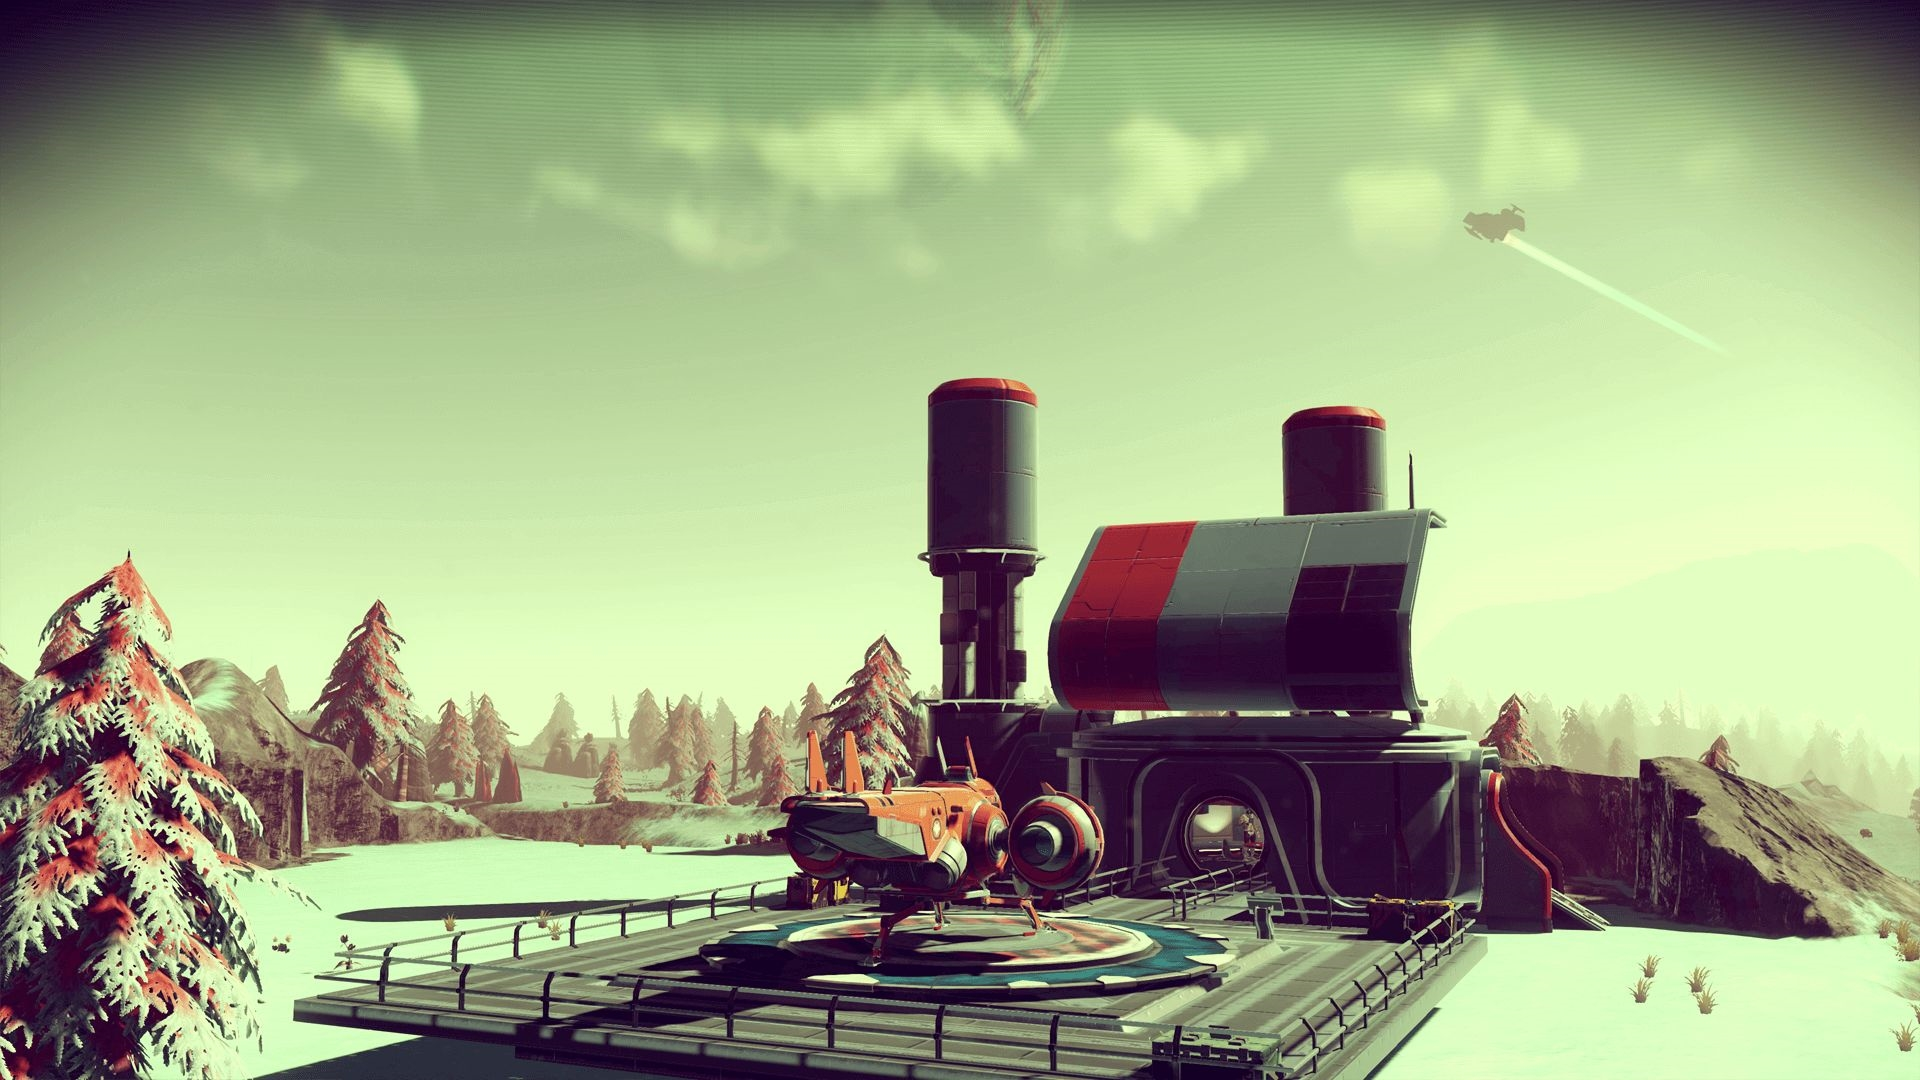 'Beyond' delivers the 'No Man's Sky' experience I was waiting for | DeviceDaily.com